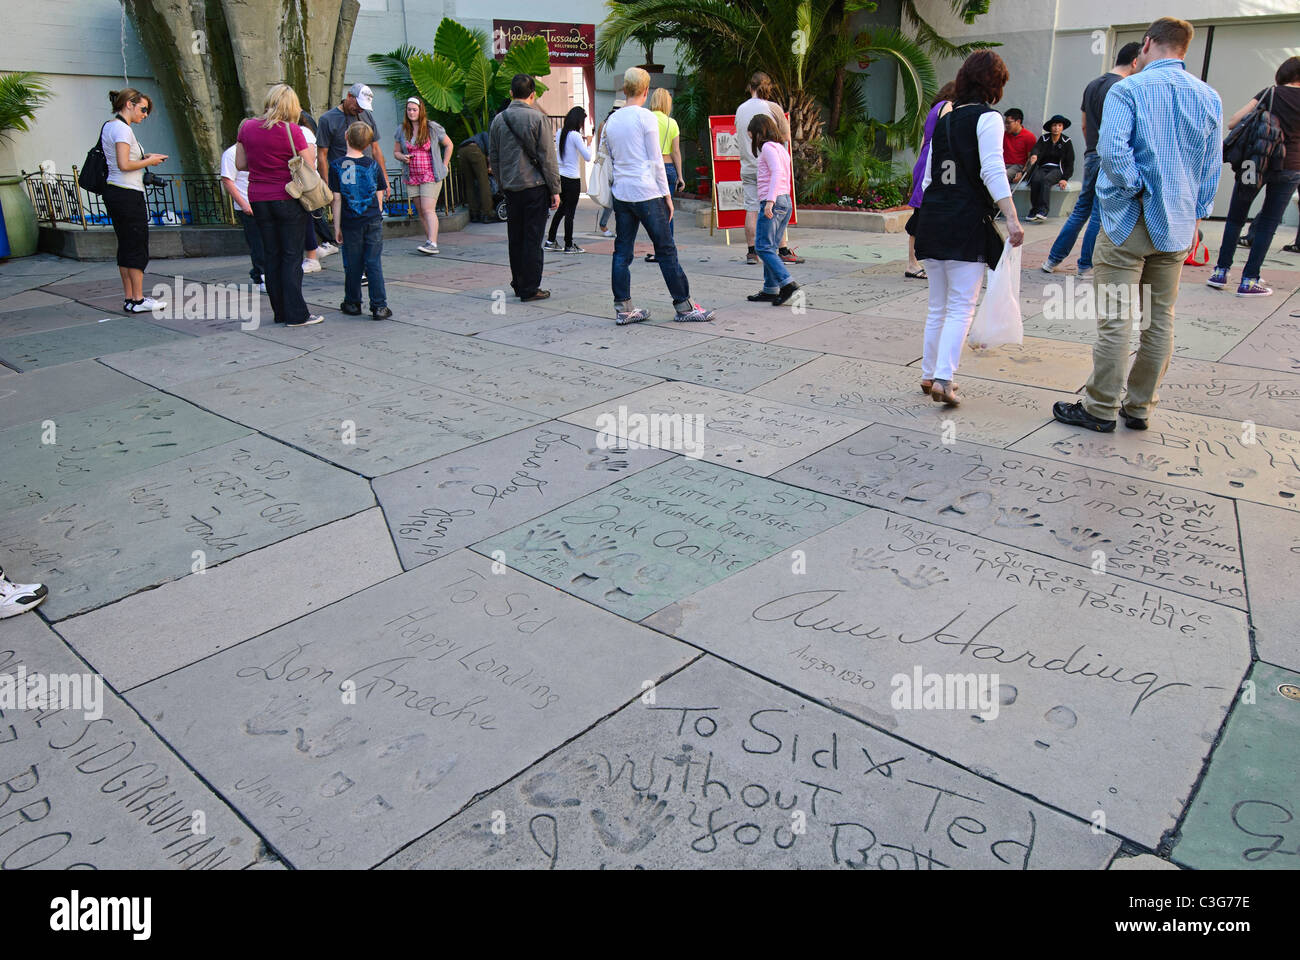 Grauman's Chinese Theatre in Hollywood, California. - Stock Image